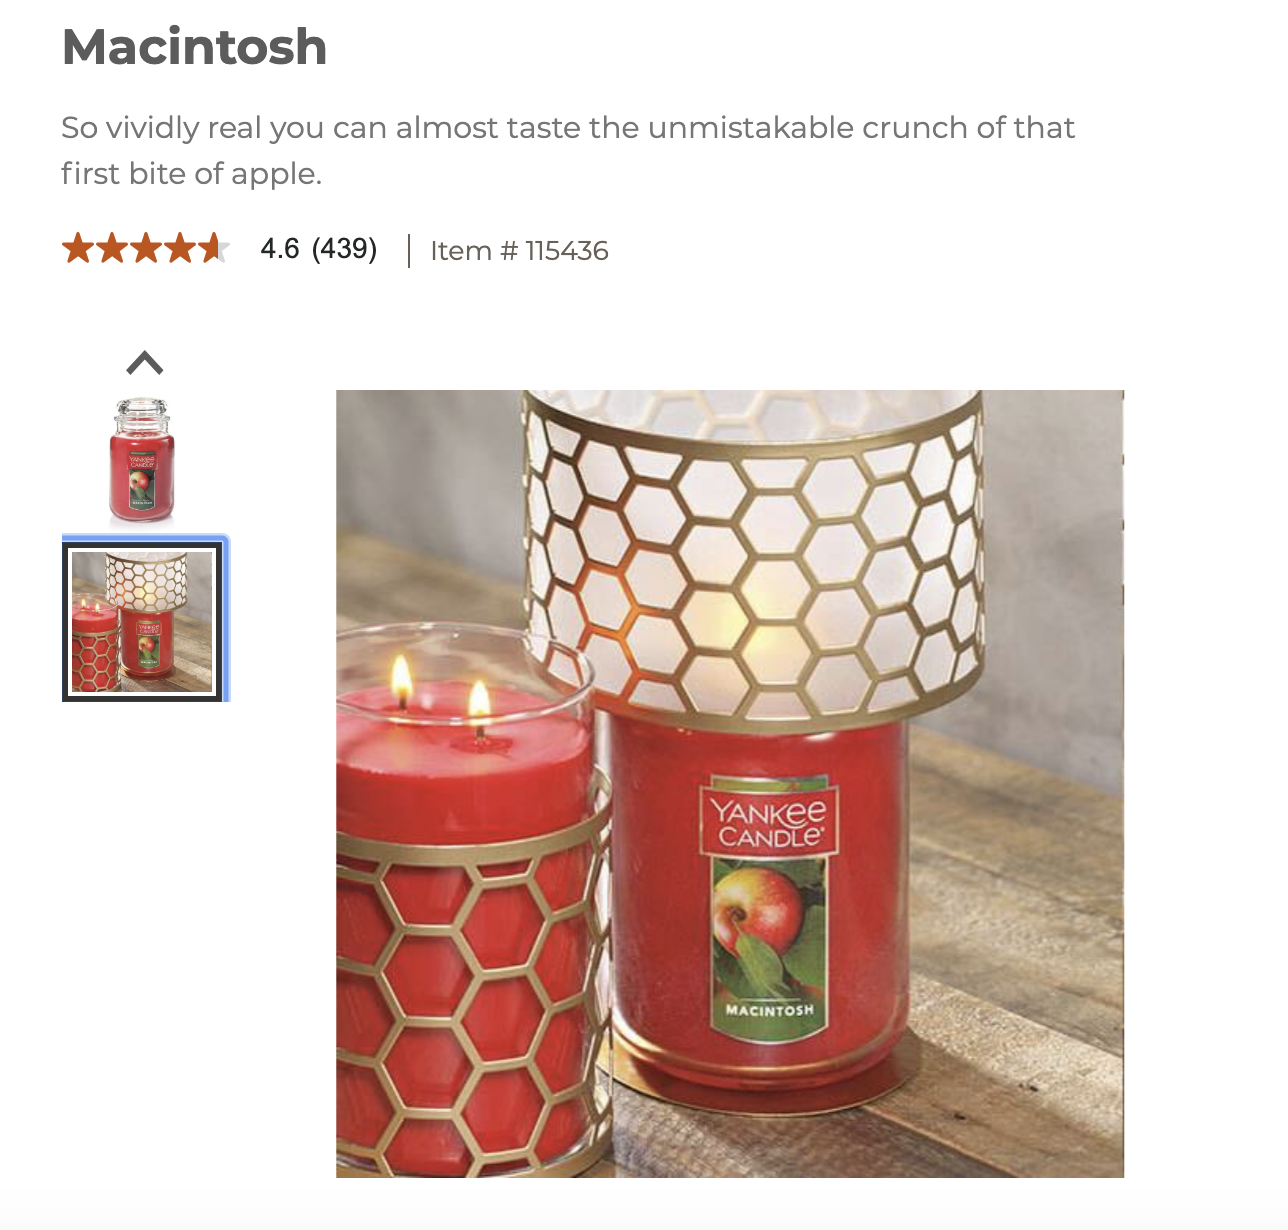 In-context product shot of a Yankee Candle